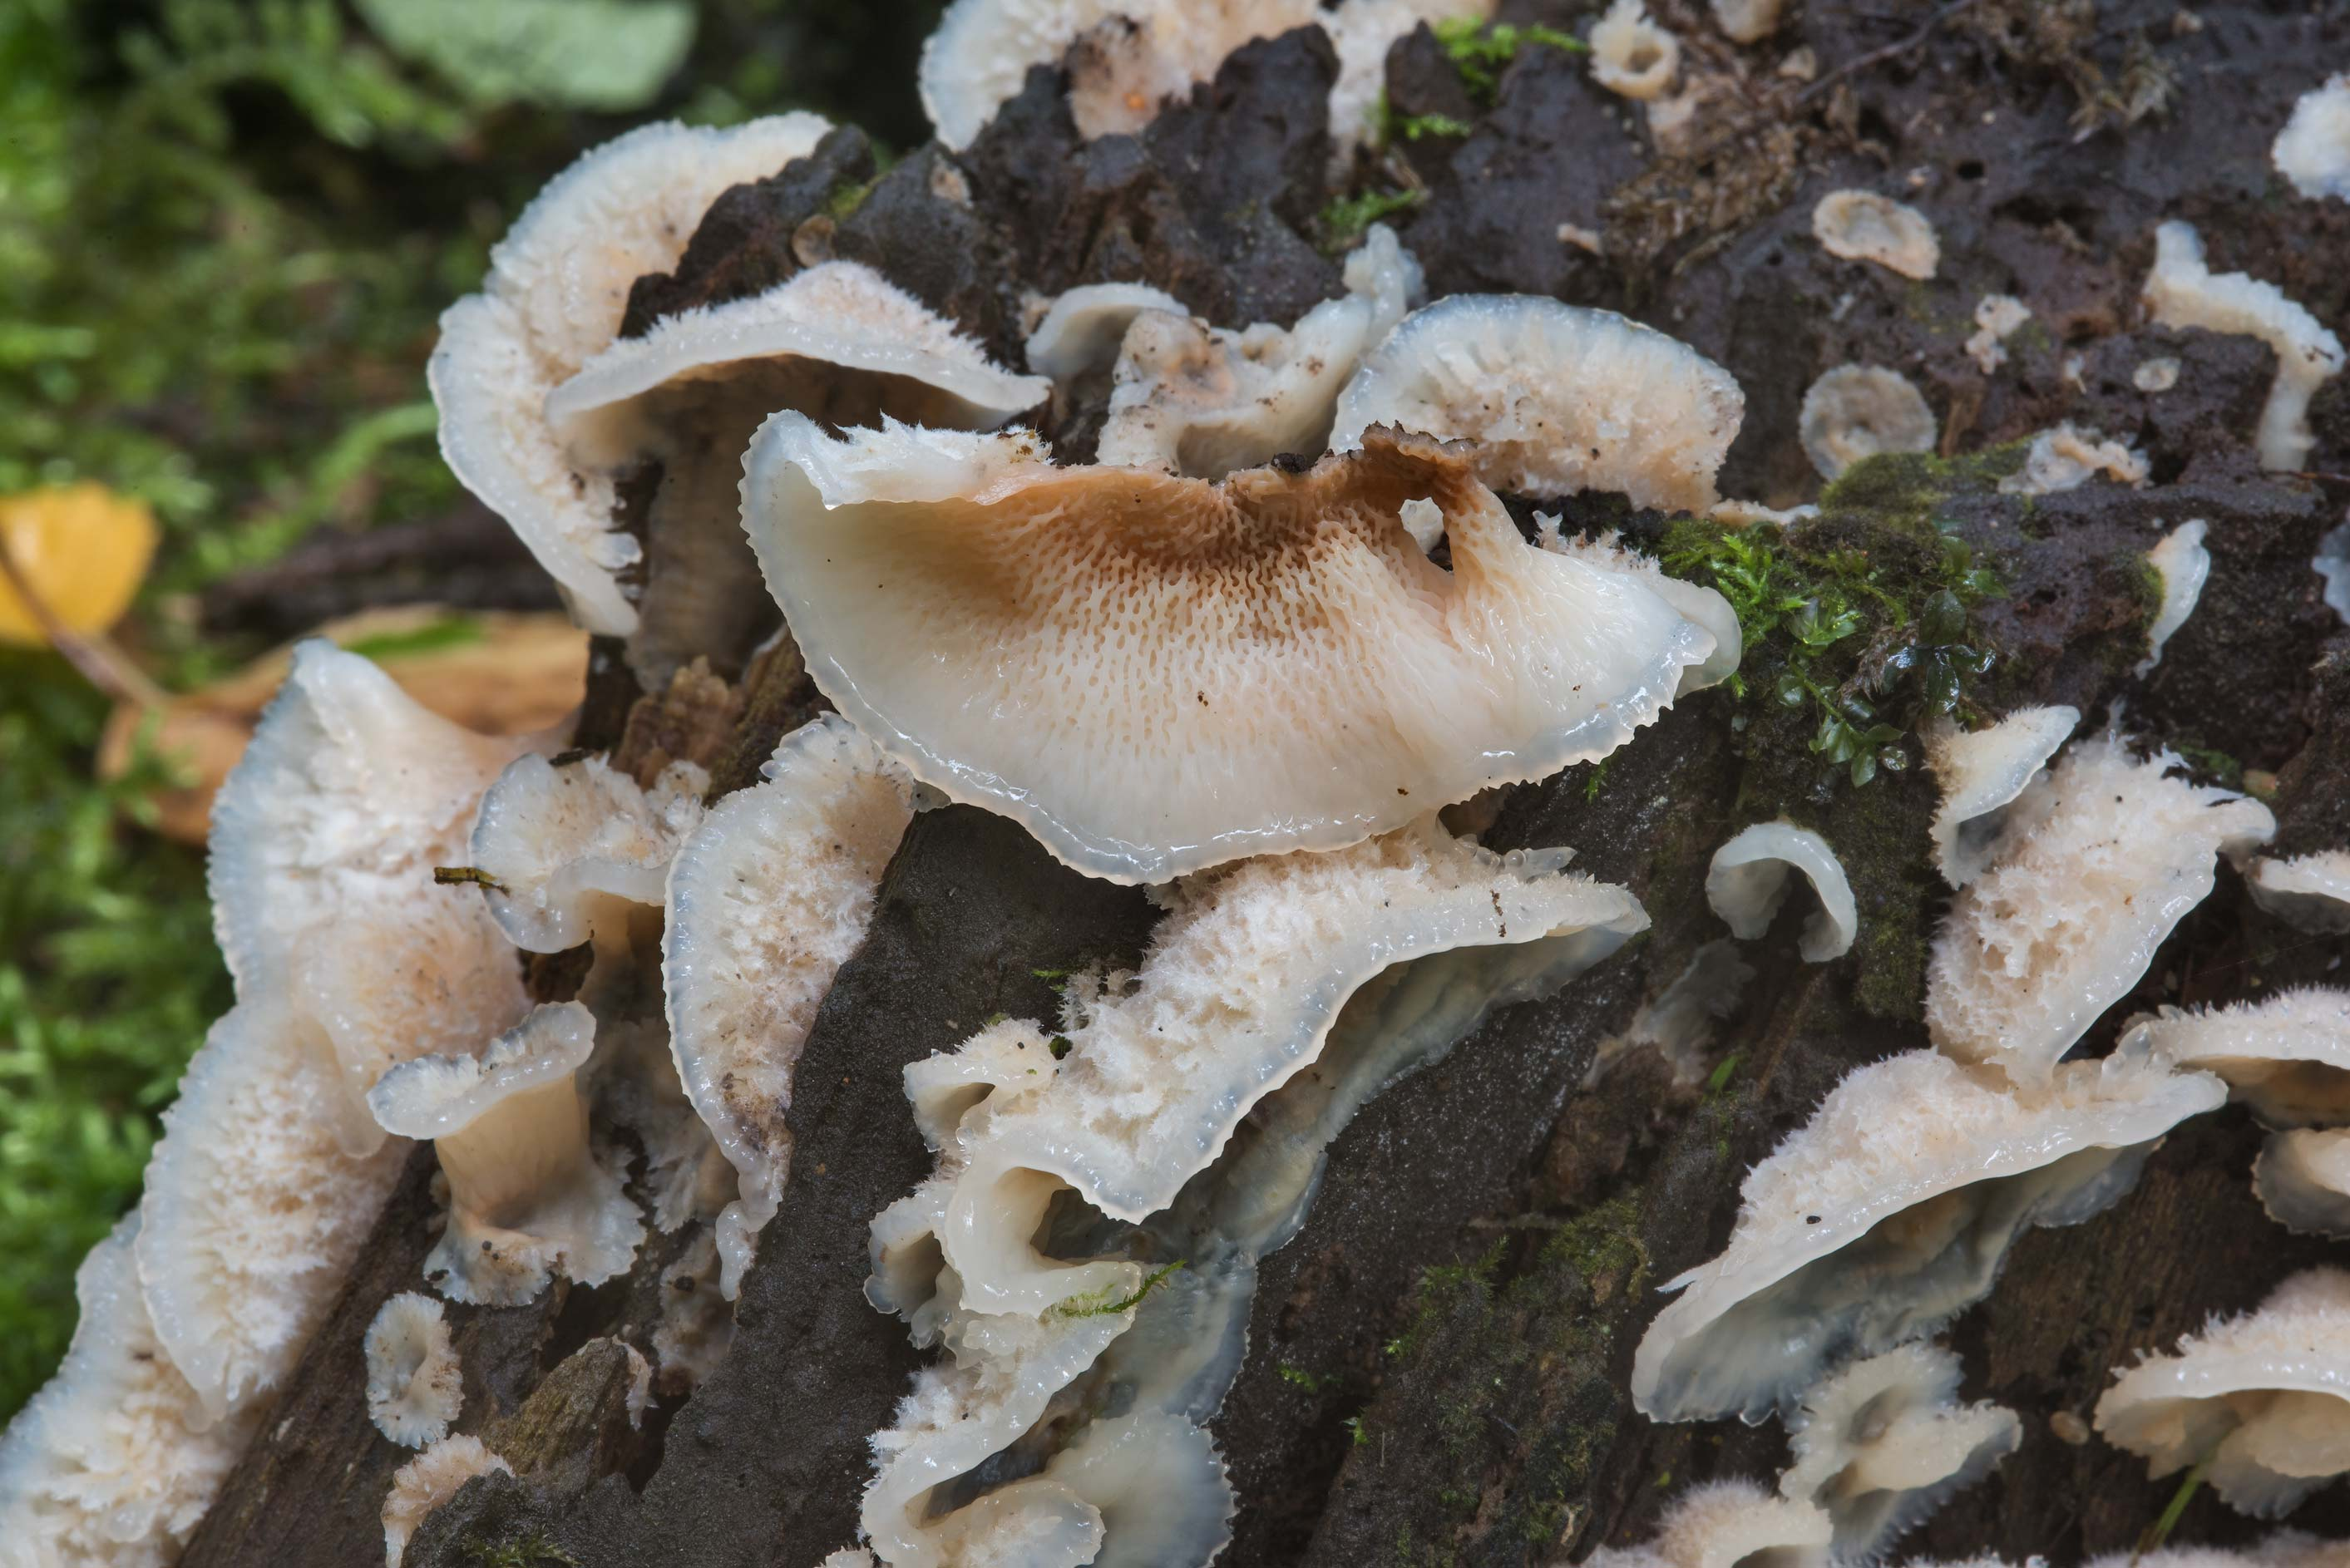 Close up of jelly rot fungus (Phlebia tremellosa...a suburb of St.Petersburg, Russia